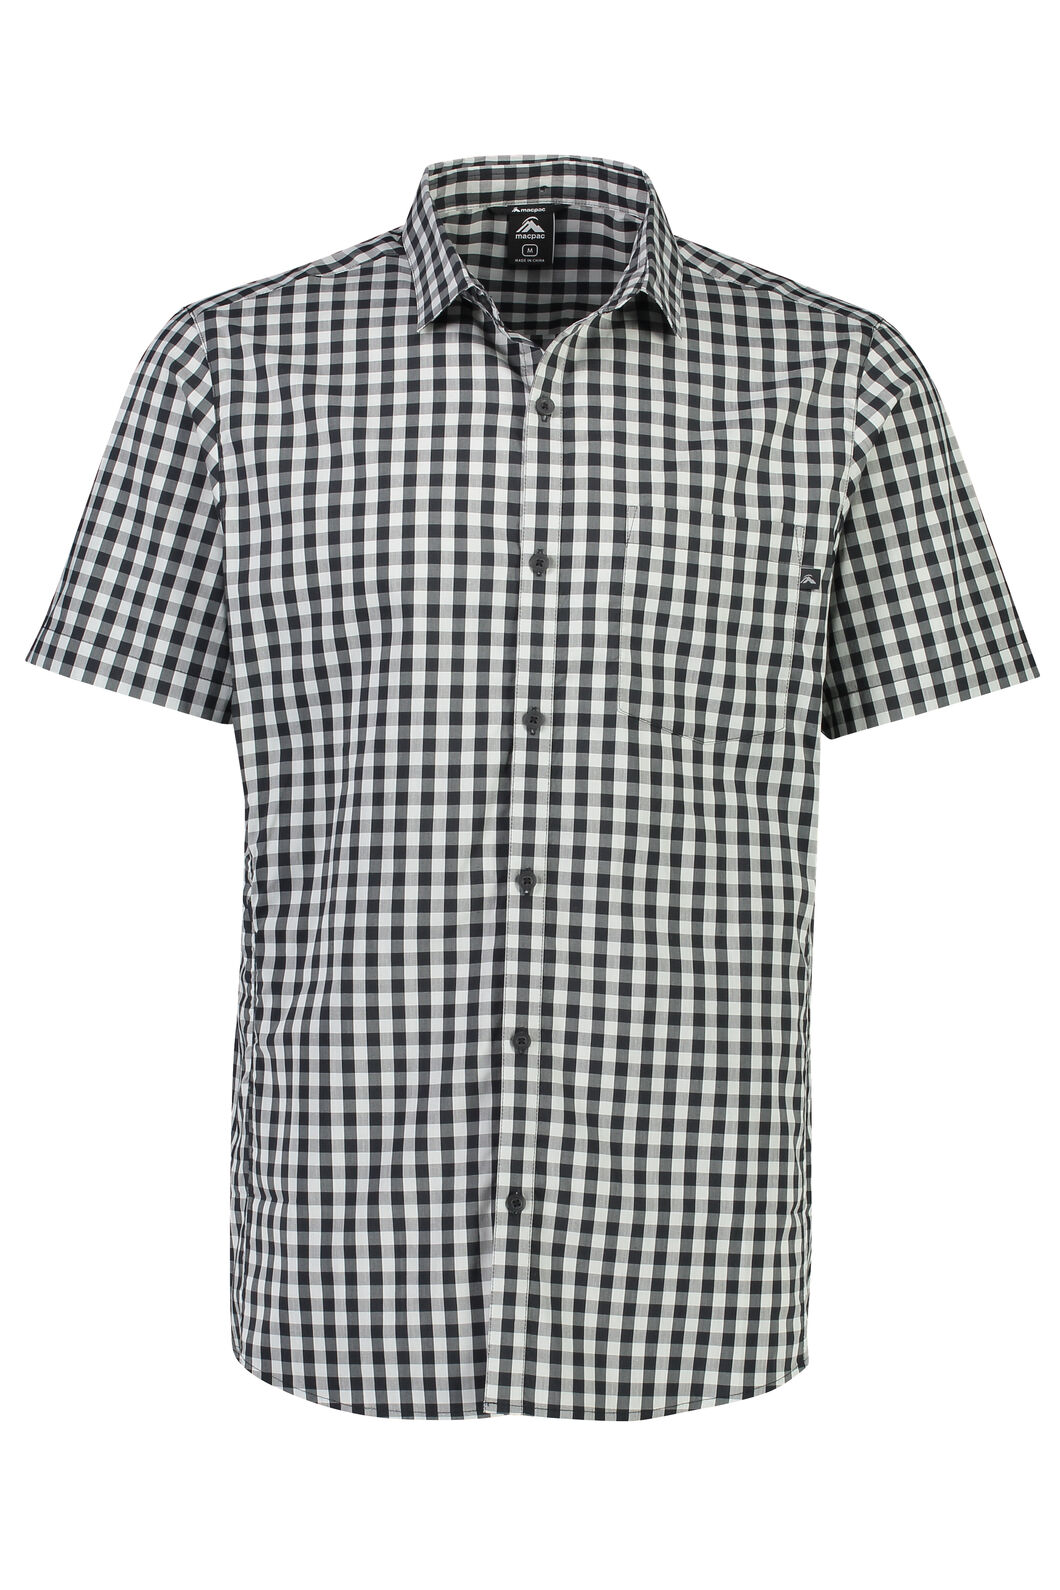 Macpac Crossroad Short Sleeve Shirt - Men's, Anthracite, hi-res